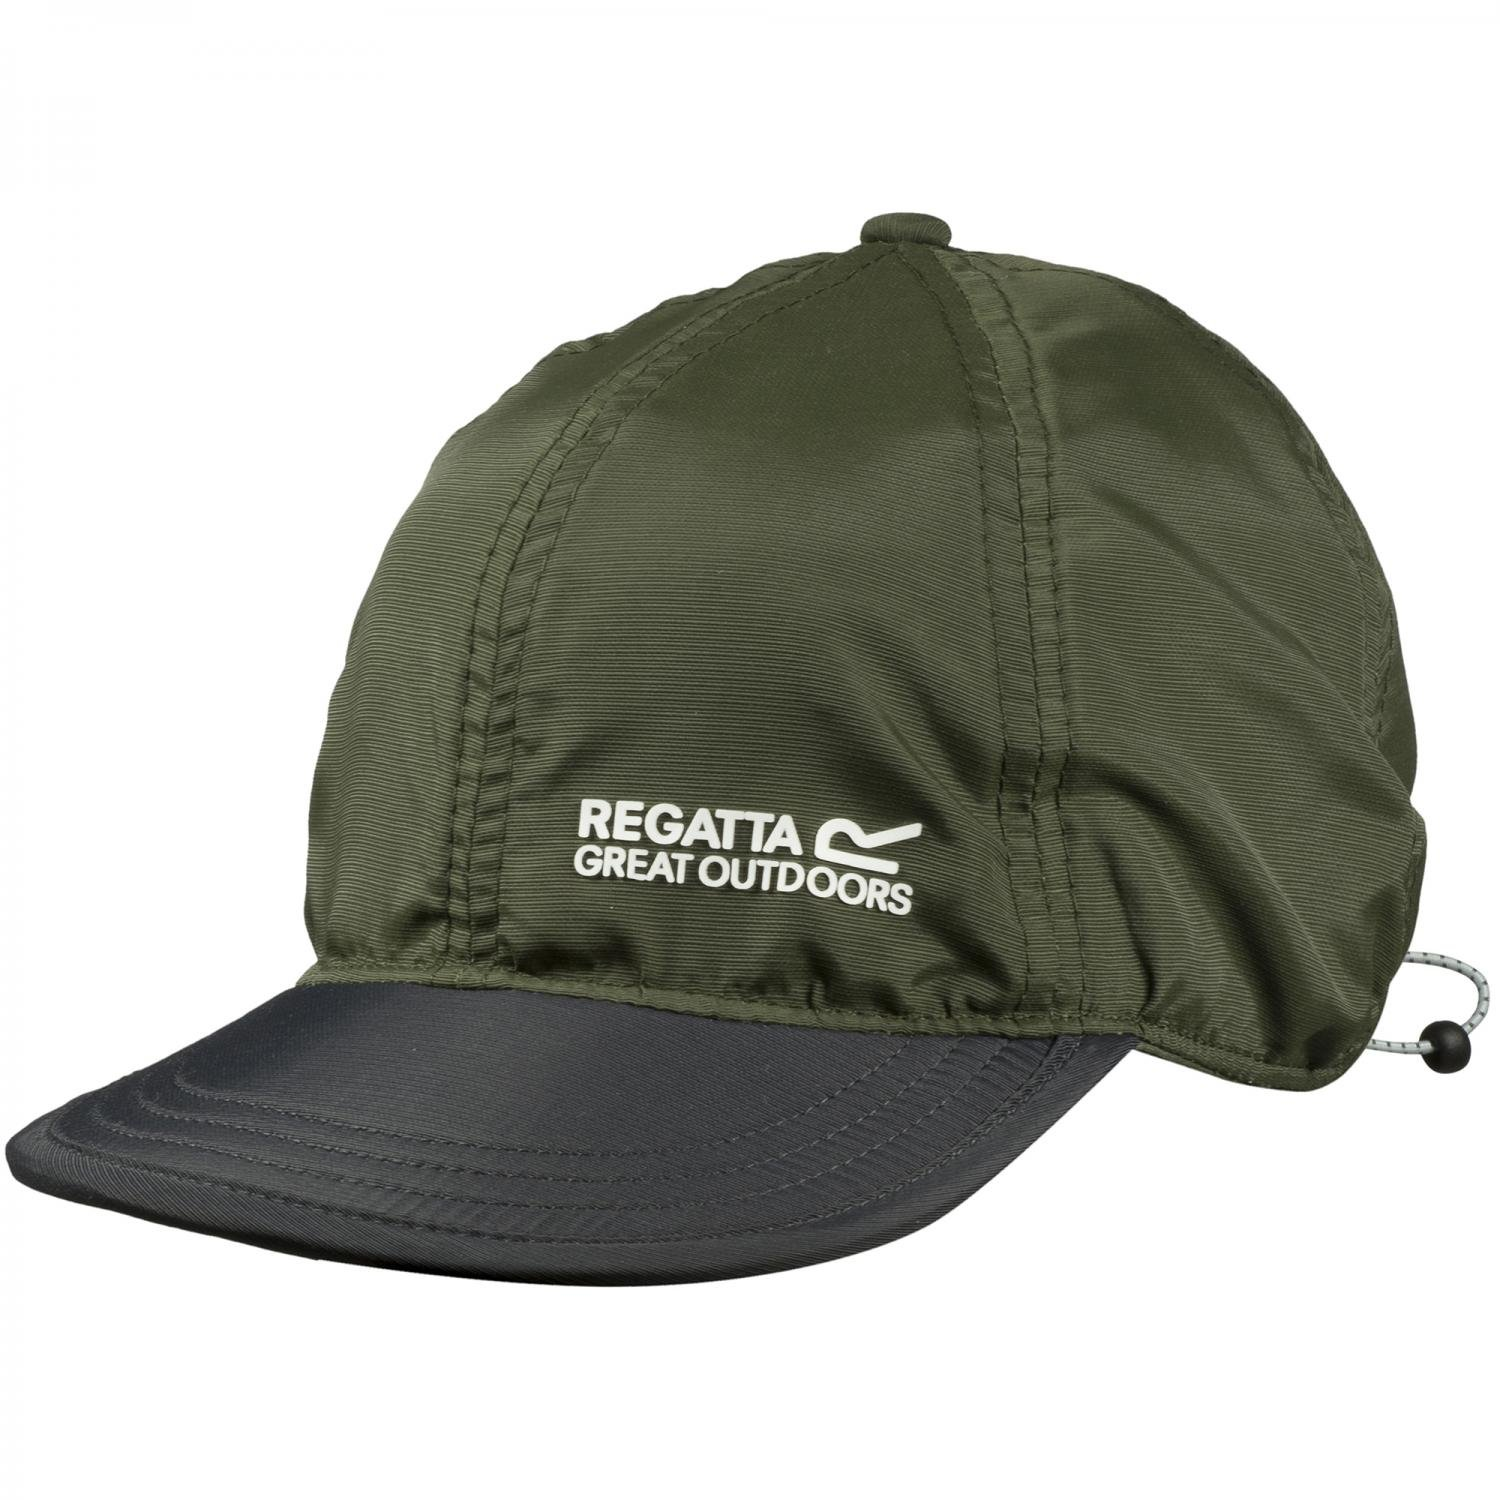 Regatta Great Outdoors - Gorra Plegable Unisex UTRG1970_6